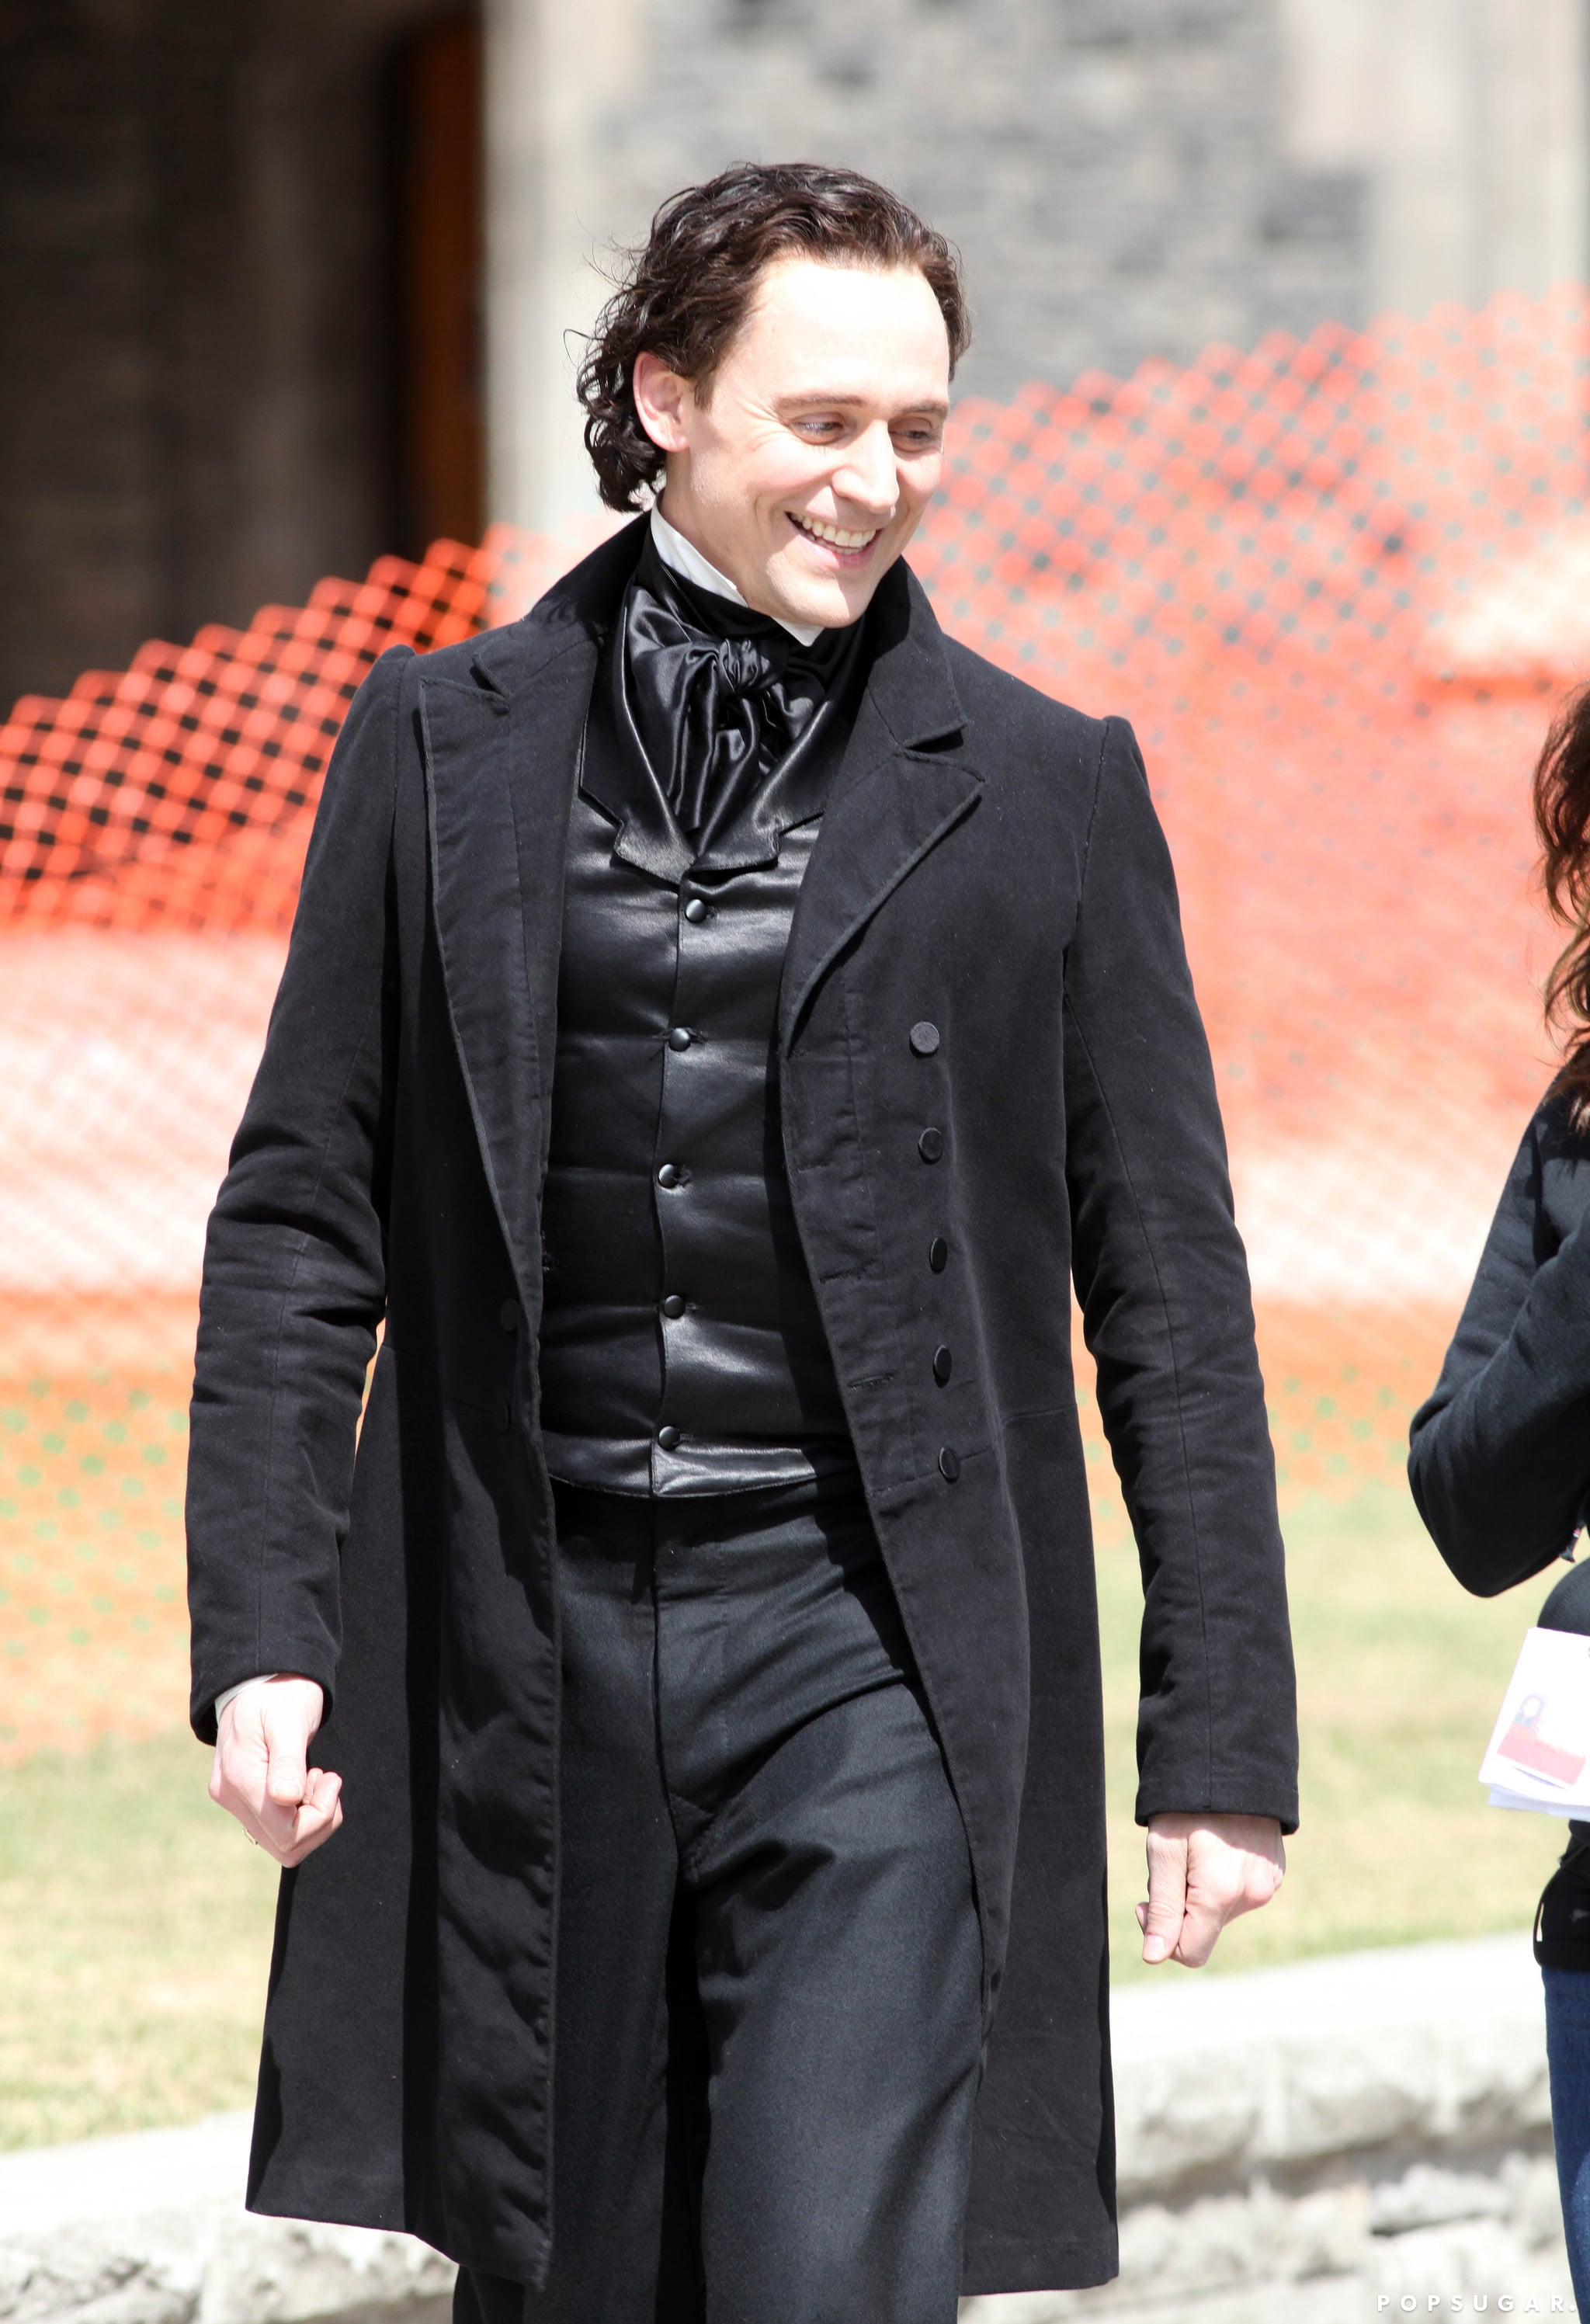 He wore all black while filming on April 16.